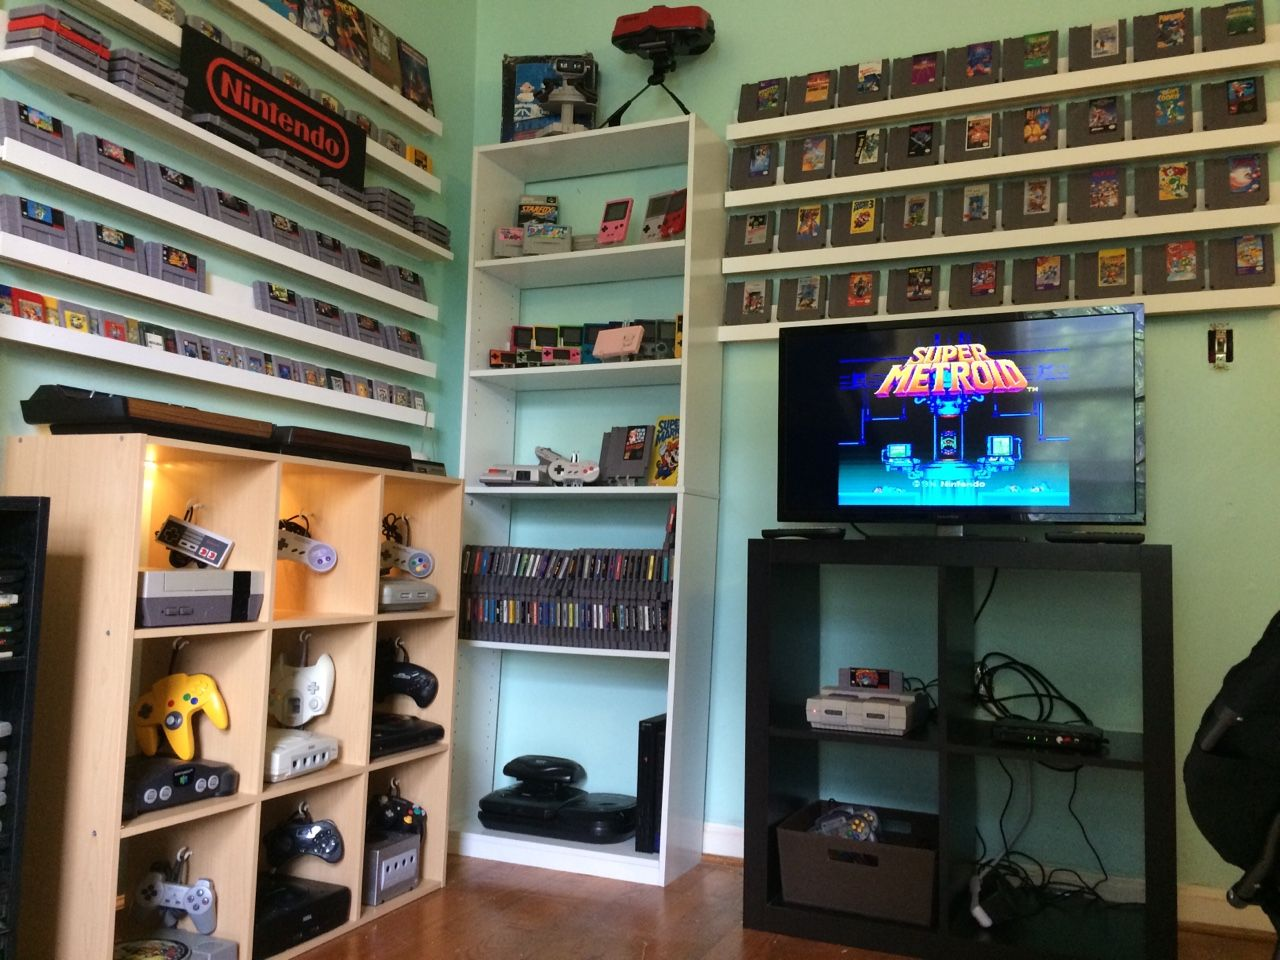 Retro Game Room Version I Needed To Patch The Walls And Paint - Retro games room ideas